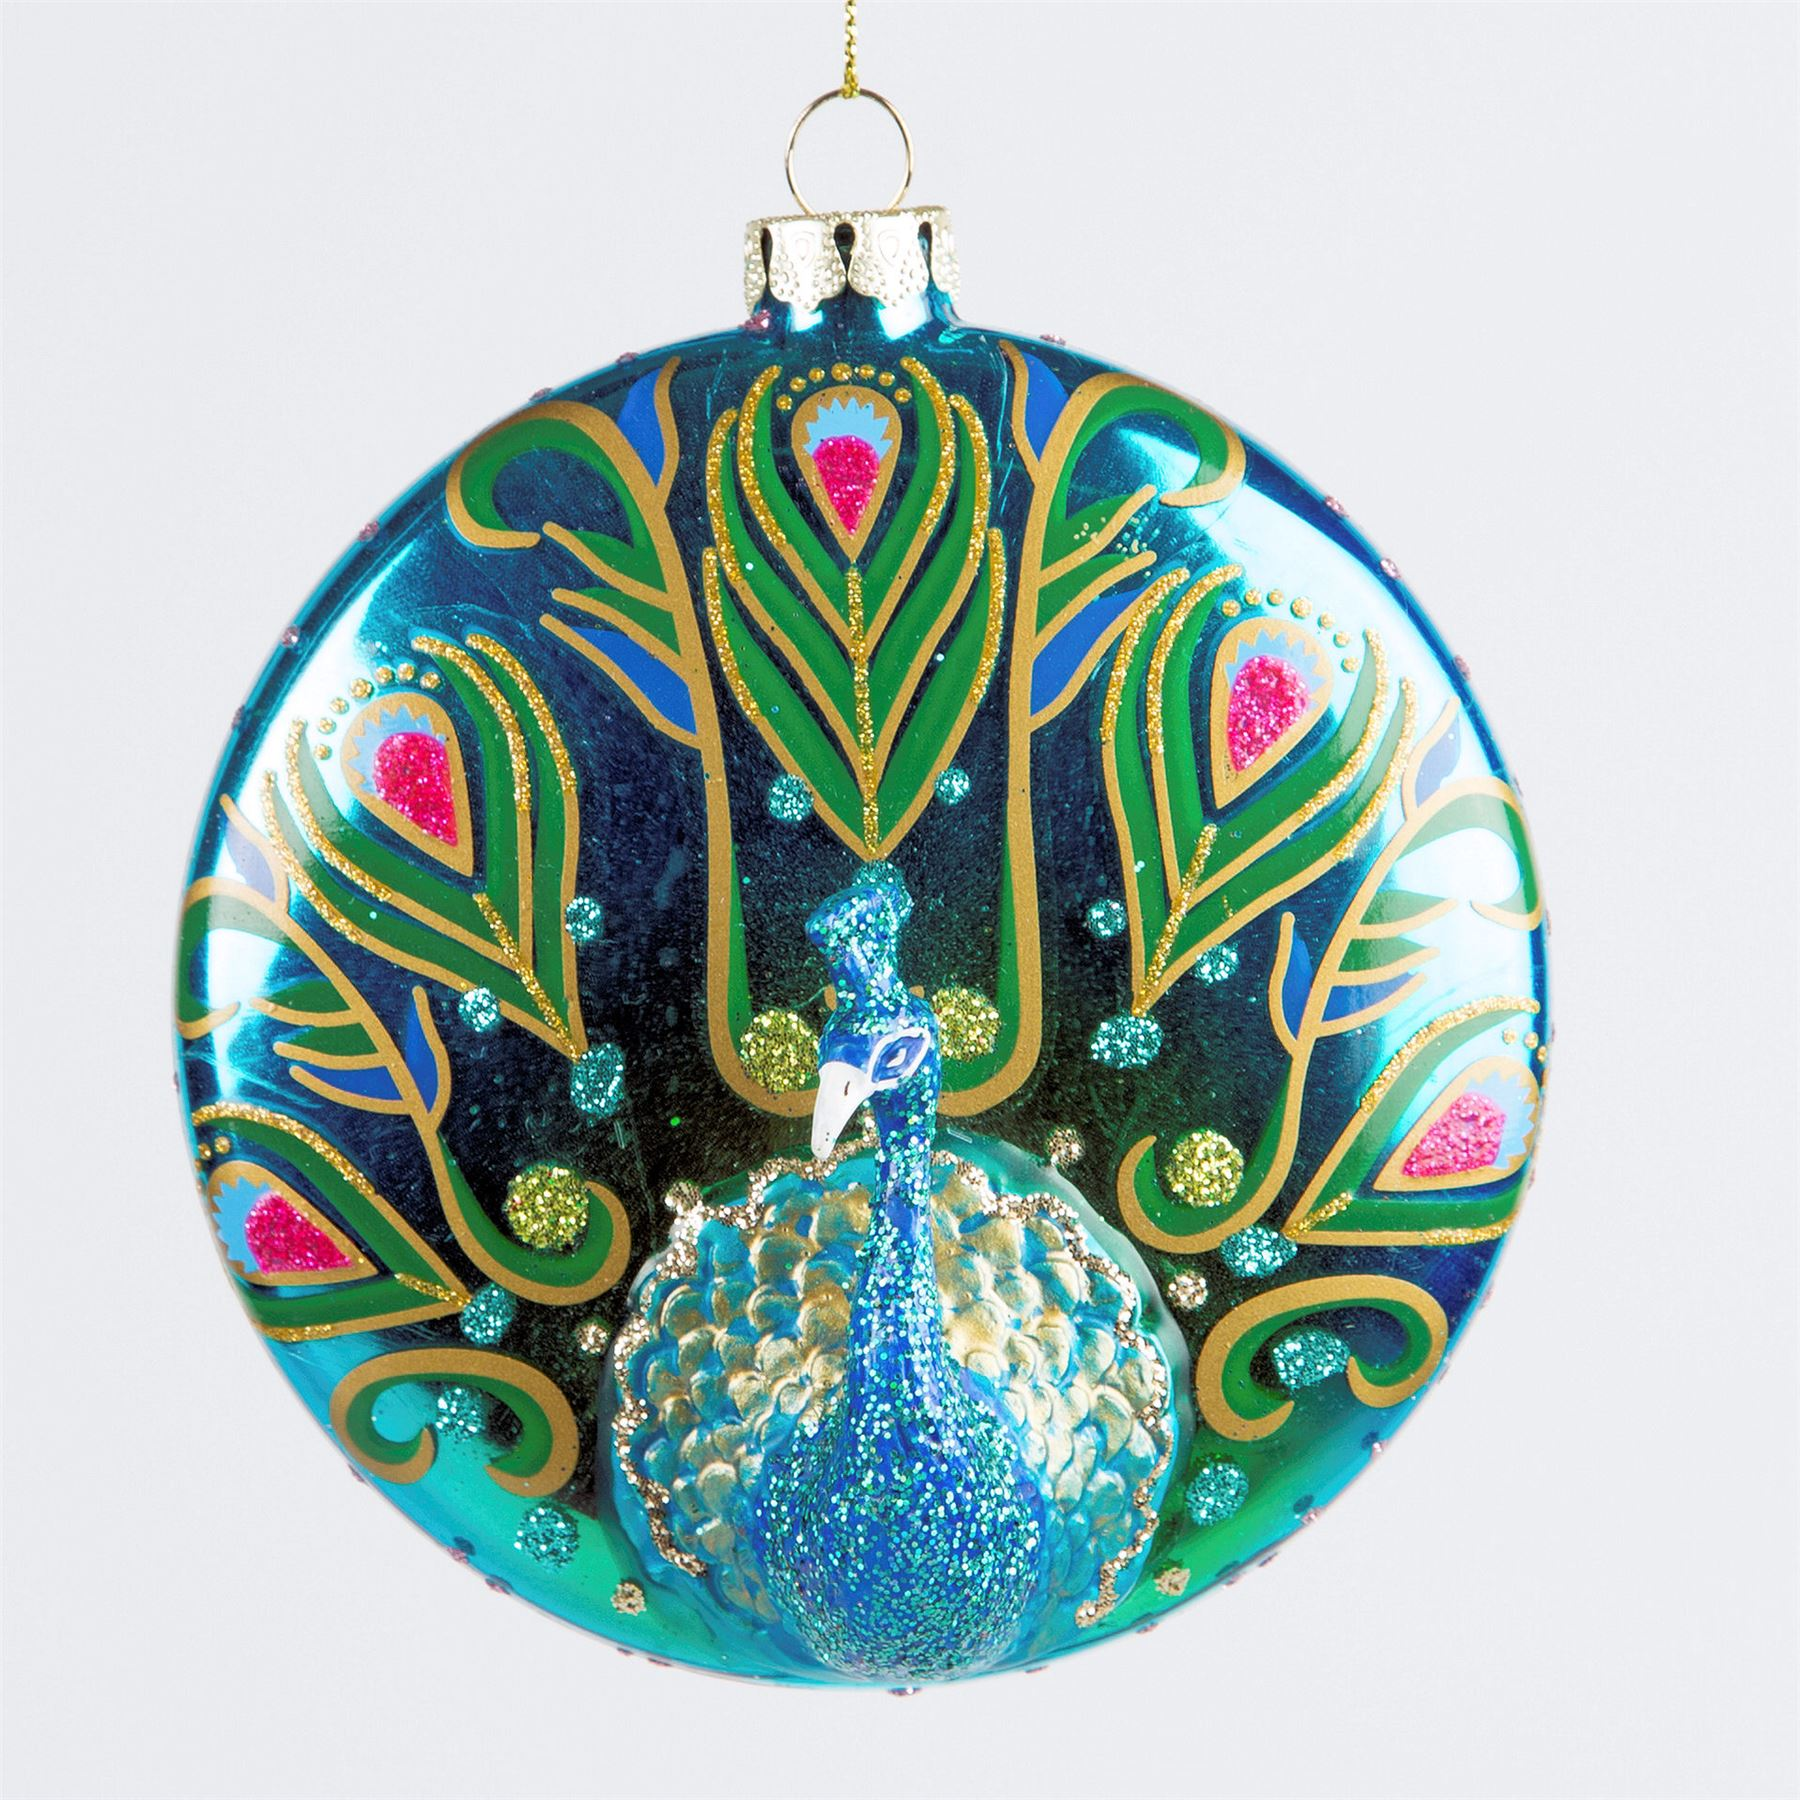 at simple design in decorate home ideas room decor lovely best christmas decorations peacock cool